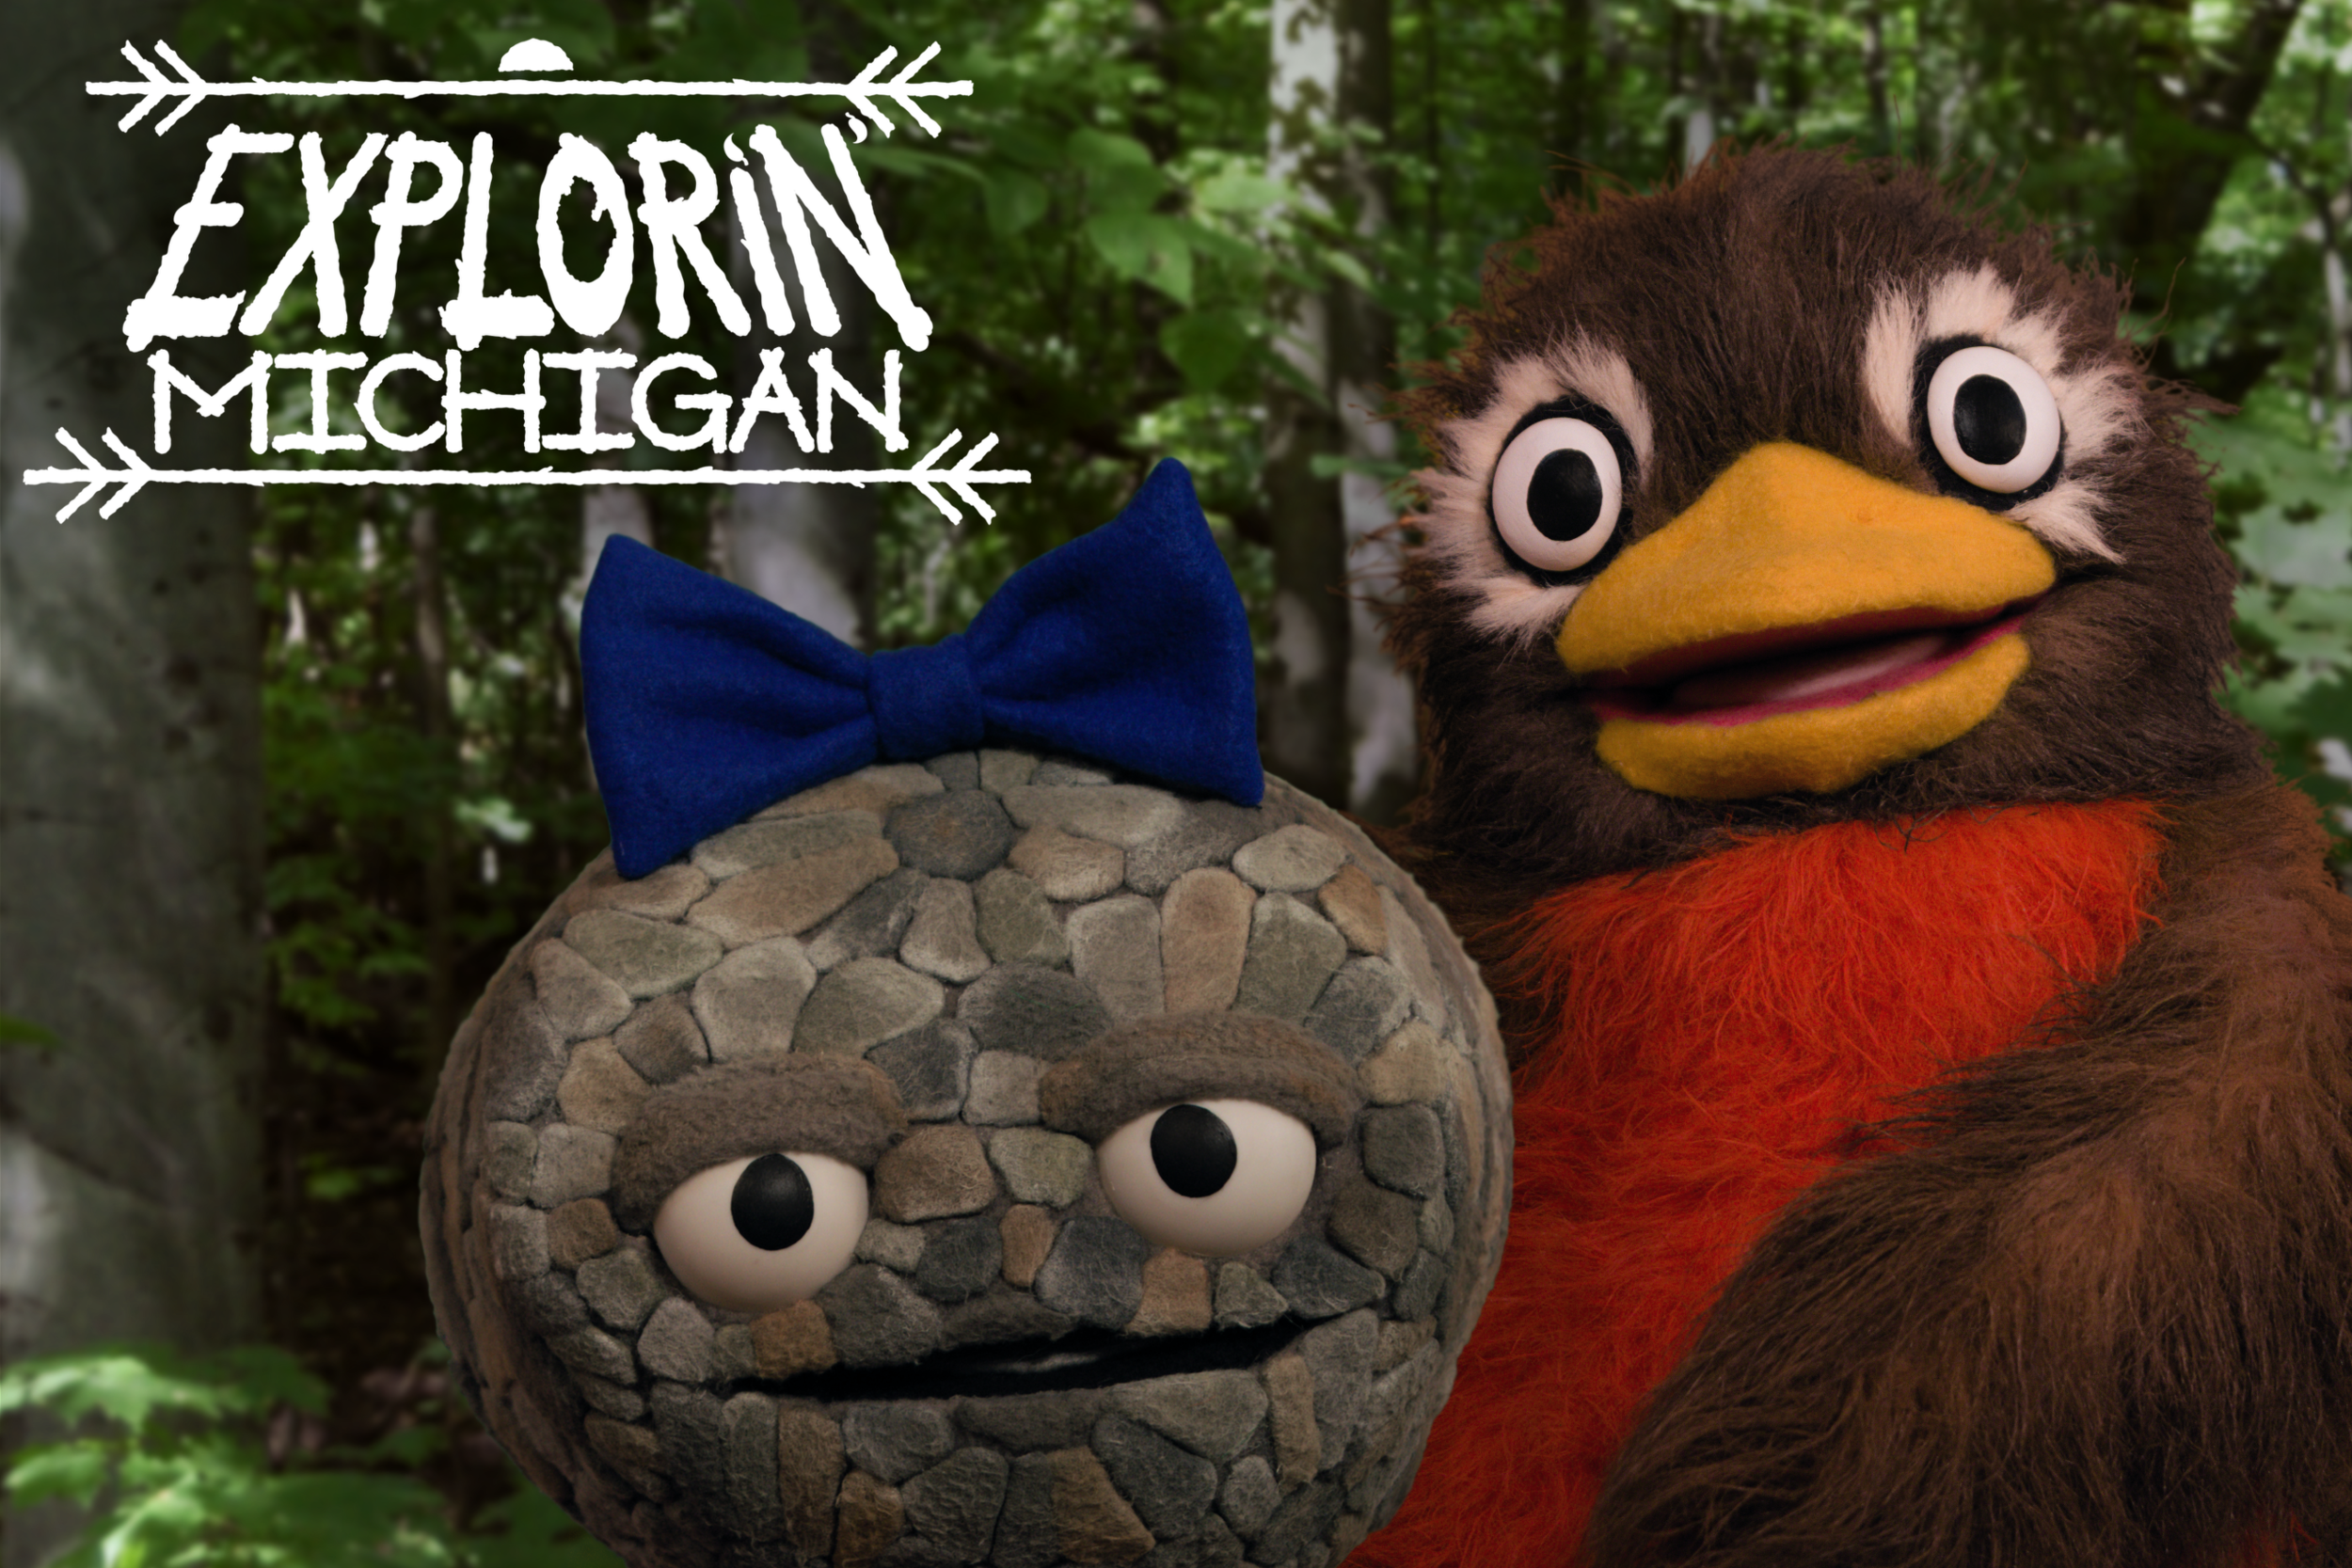 Meet Pebbleena Petoskey Stone and Rusty Robin in   Explorin' Michigan  !